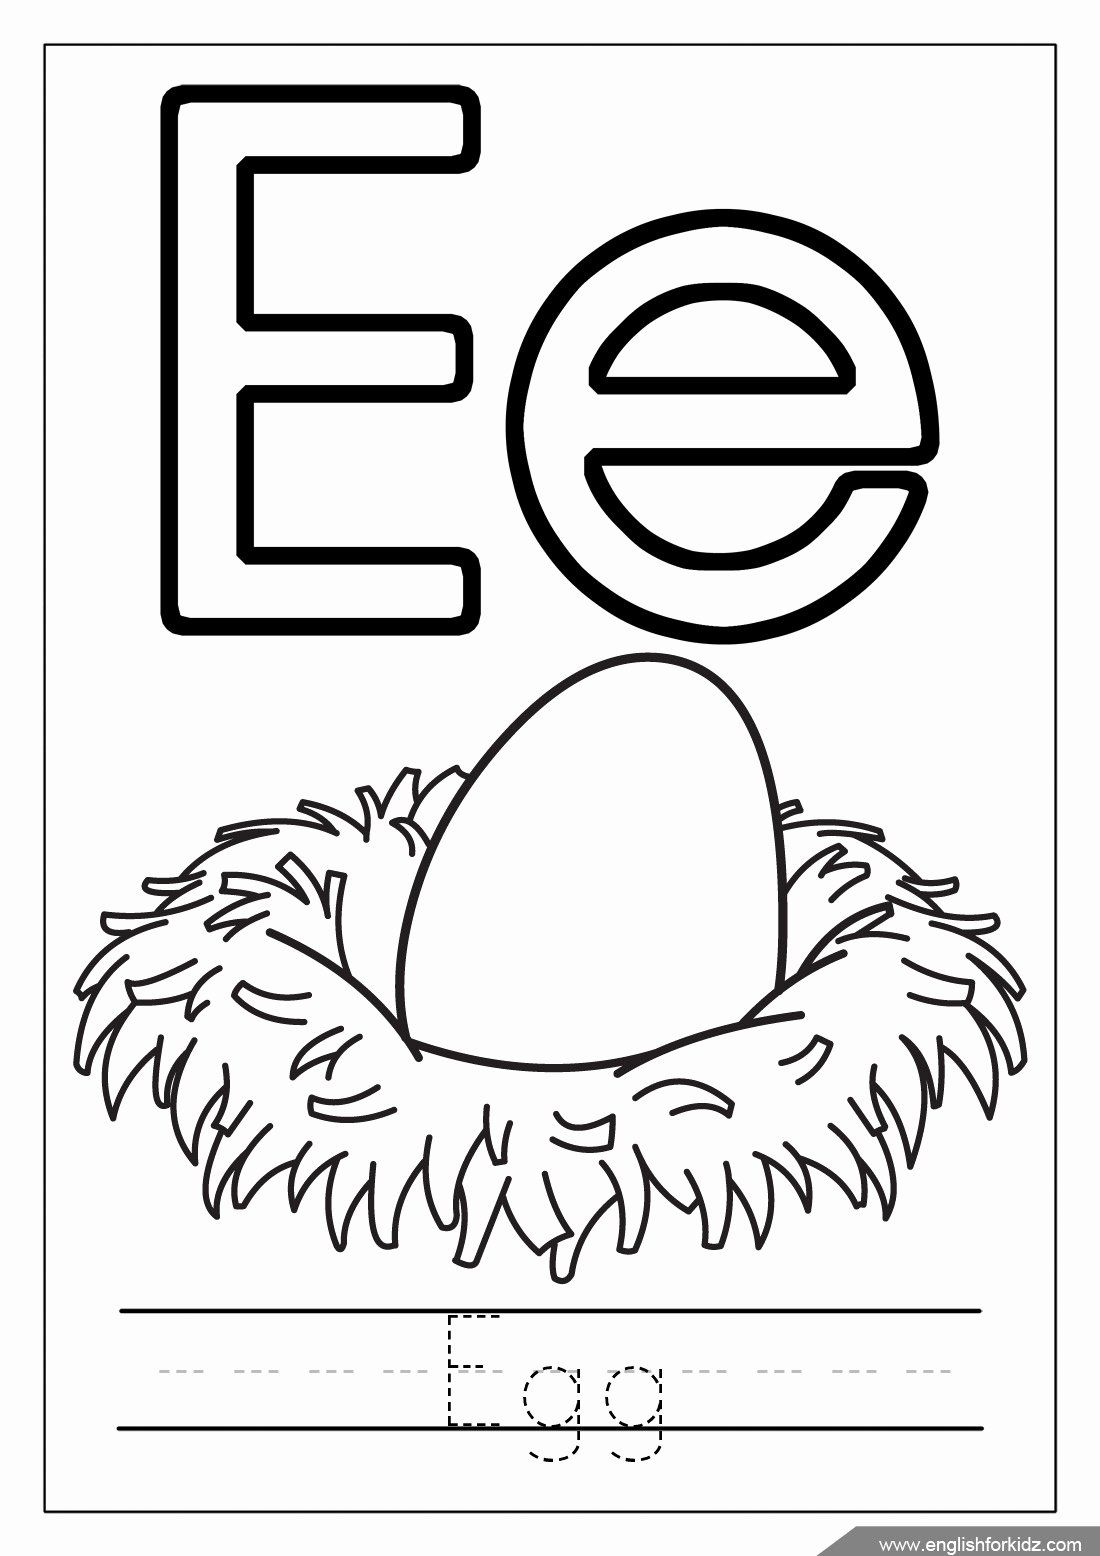 Letter E Coloring Page Luxury Printable Alphabet Coloring